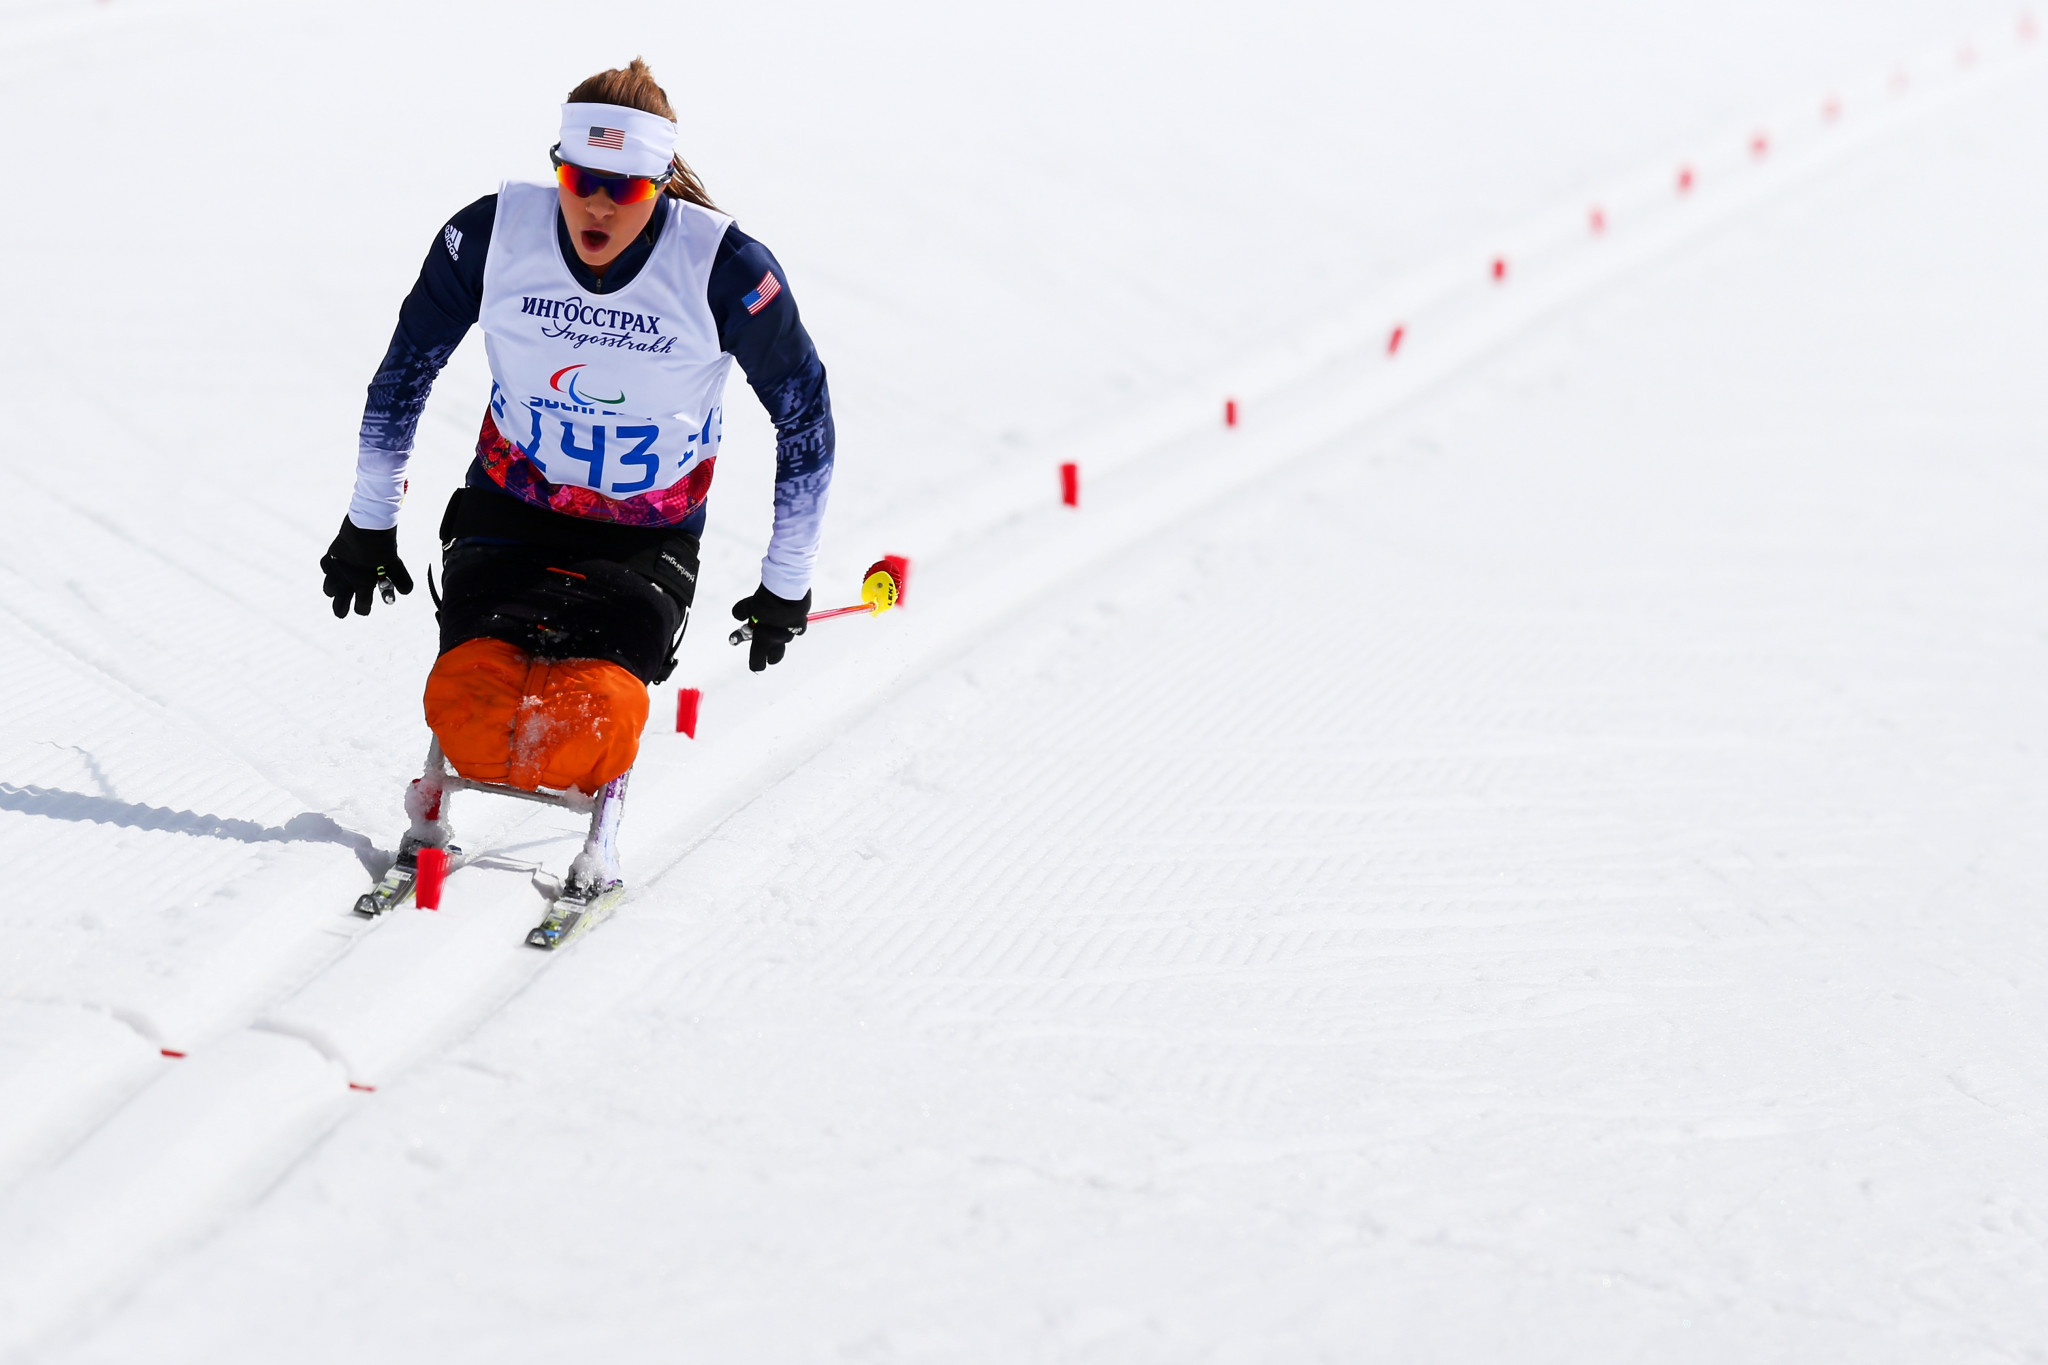 The United States' Oksana Masters looks on course to grab the overall titles in the sitting cross-country and biathlon races, despite not competing in Vuokatti ©Getty Images